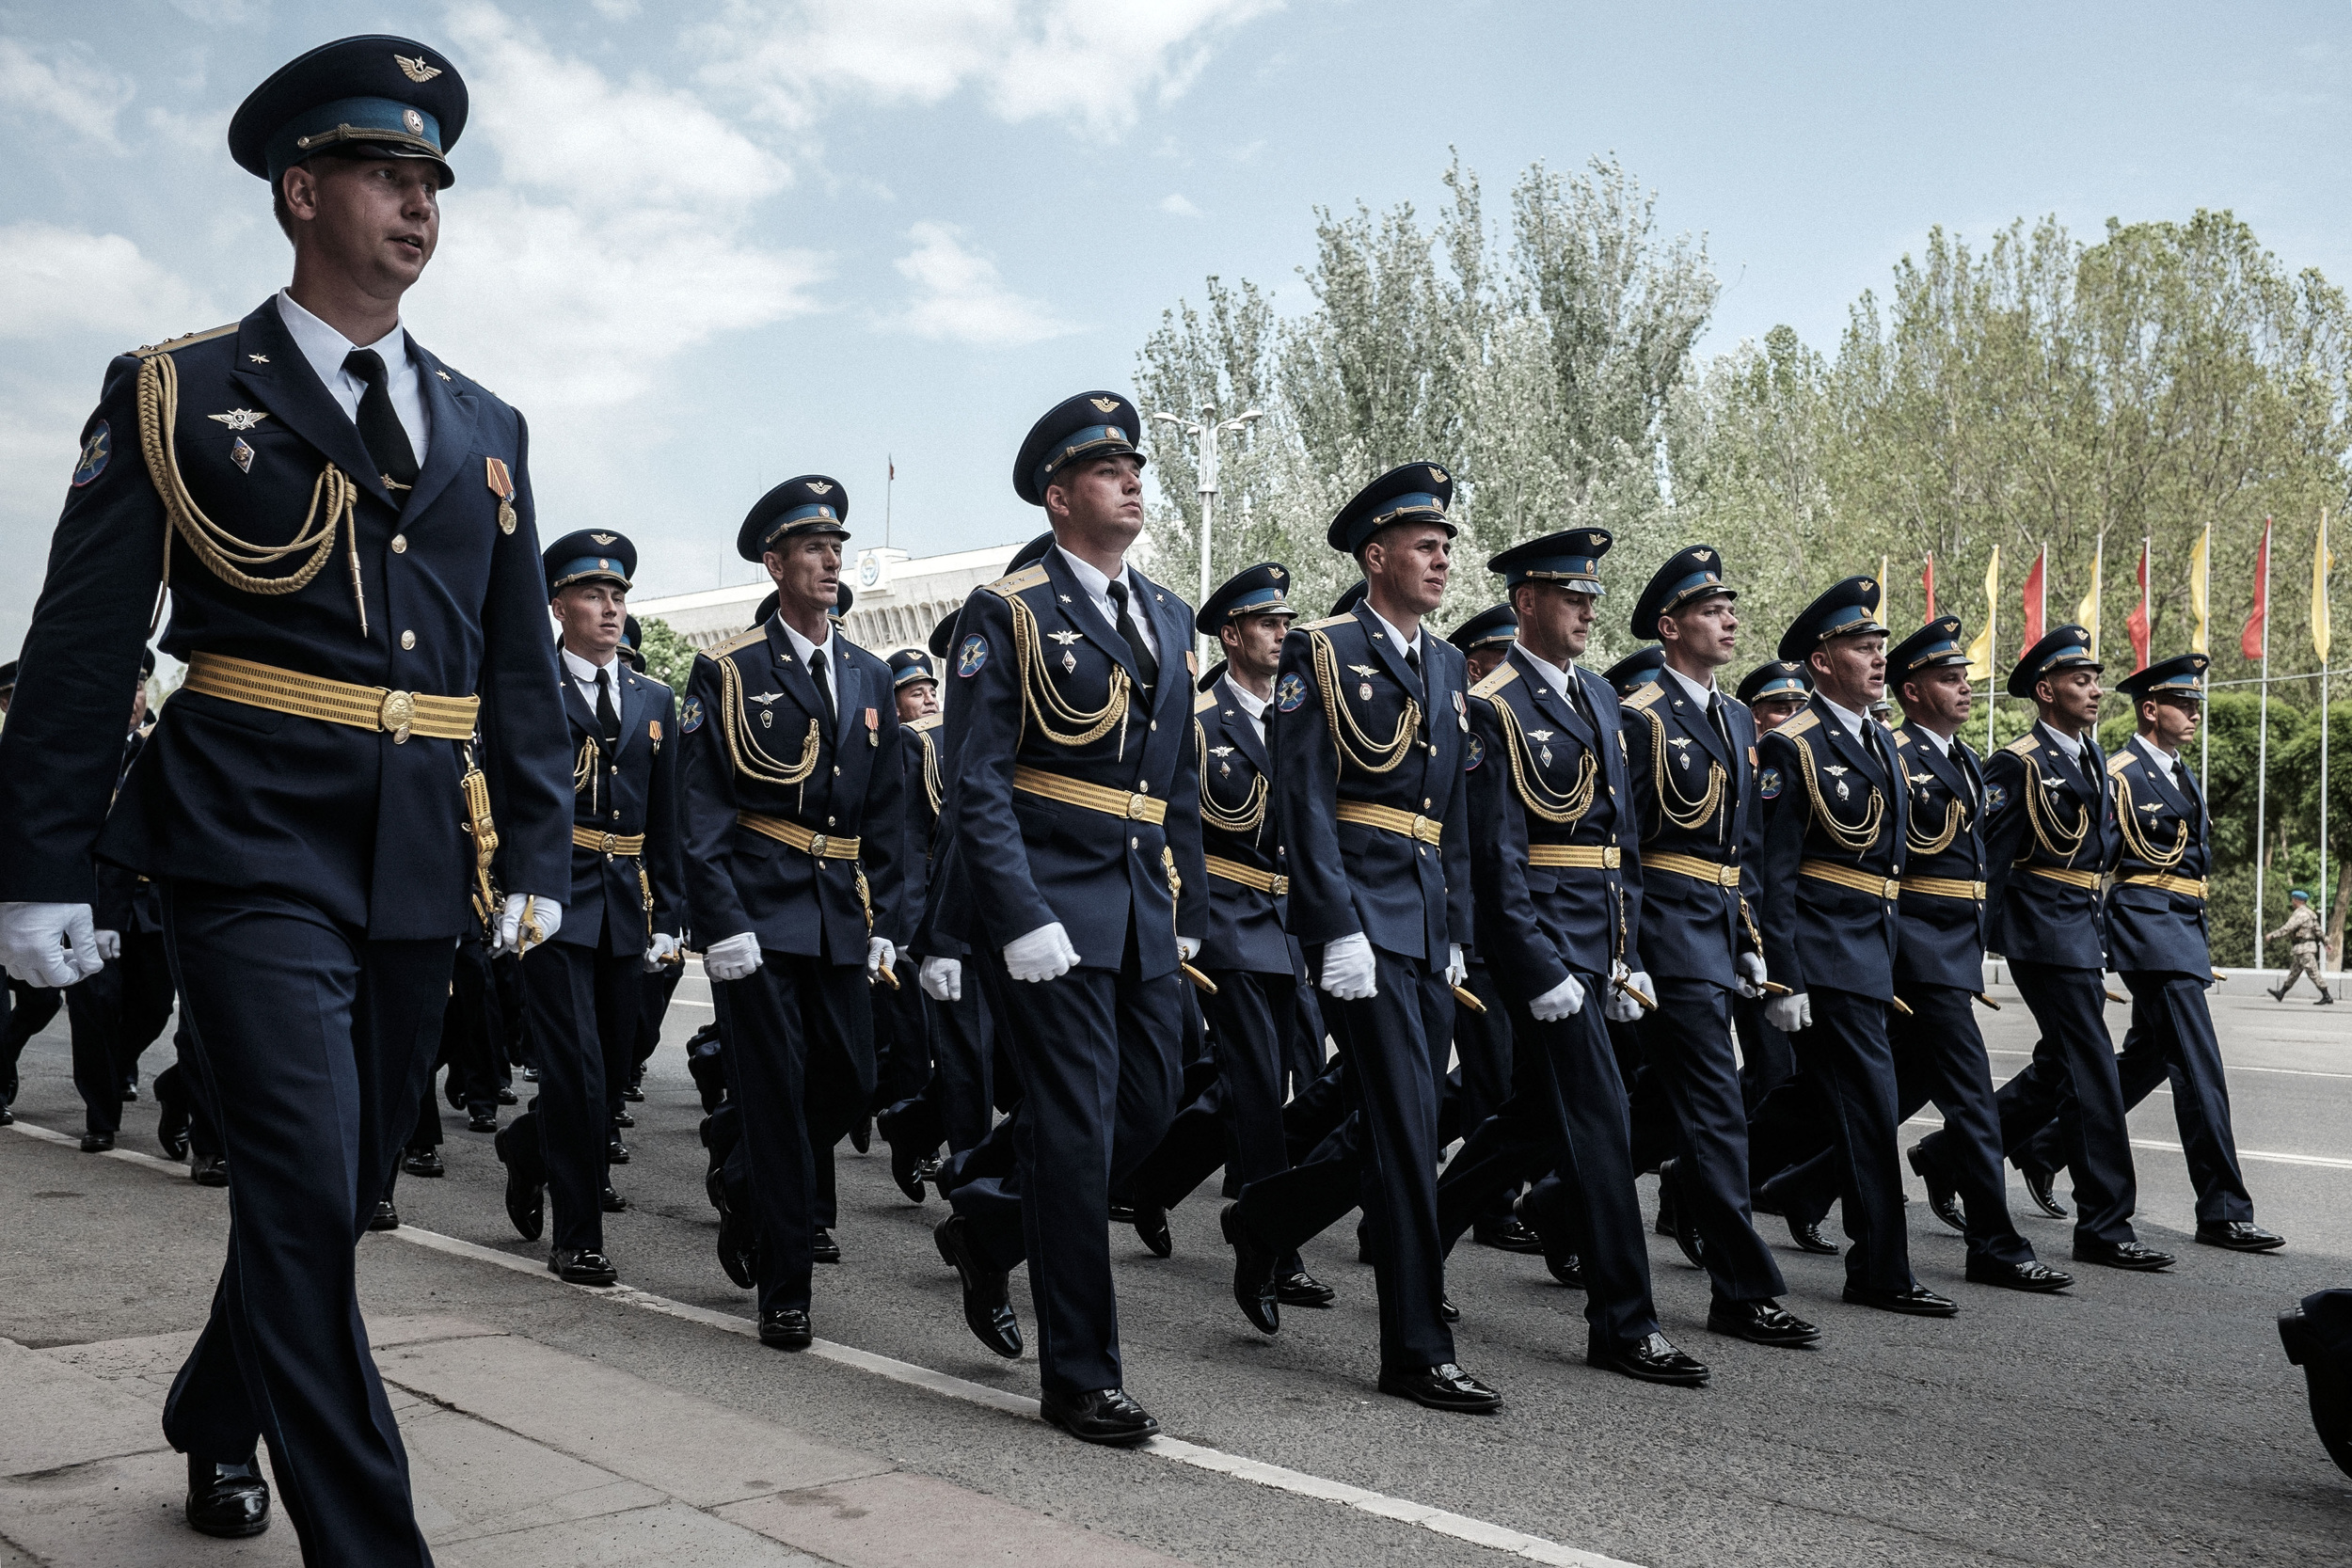 Russian soldiers on the rehearsal for the military parade, which held on Ala-too square on May 7 in Bishkek, Kyrgyzstan. Russian Armed Forces took part first time in history on festivities of Victory day oranized in foreign country. Bishkek, Ala-too square, May 7, 2015